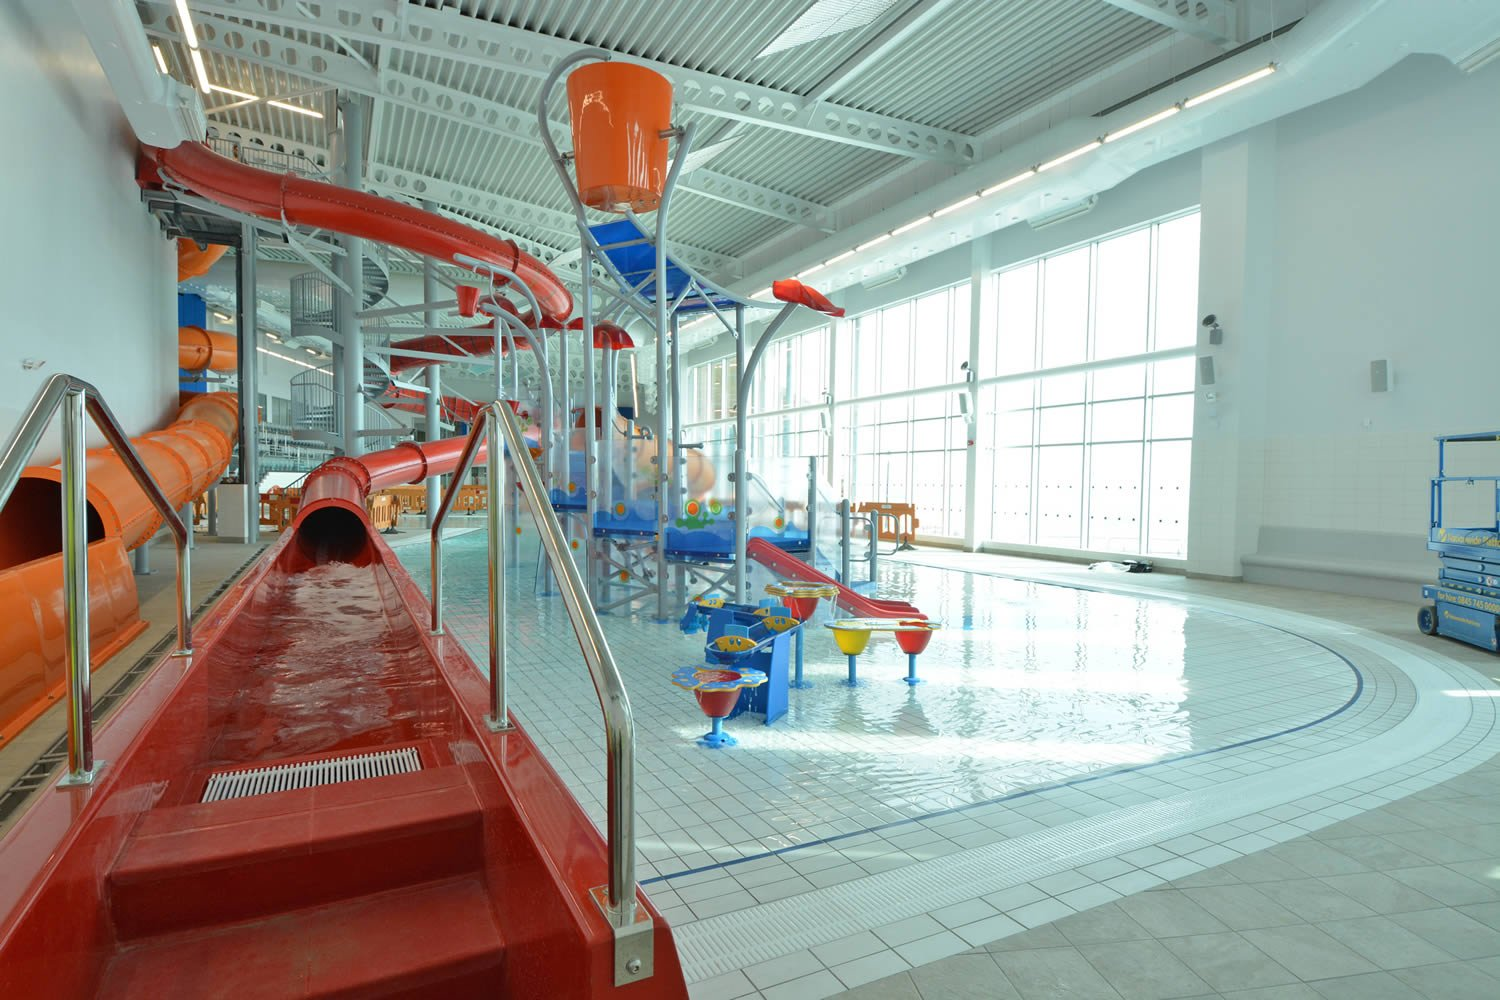 22 Wonderful Swimming Pools With Slides East Yorkshire